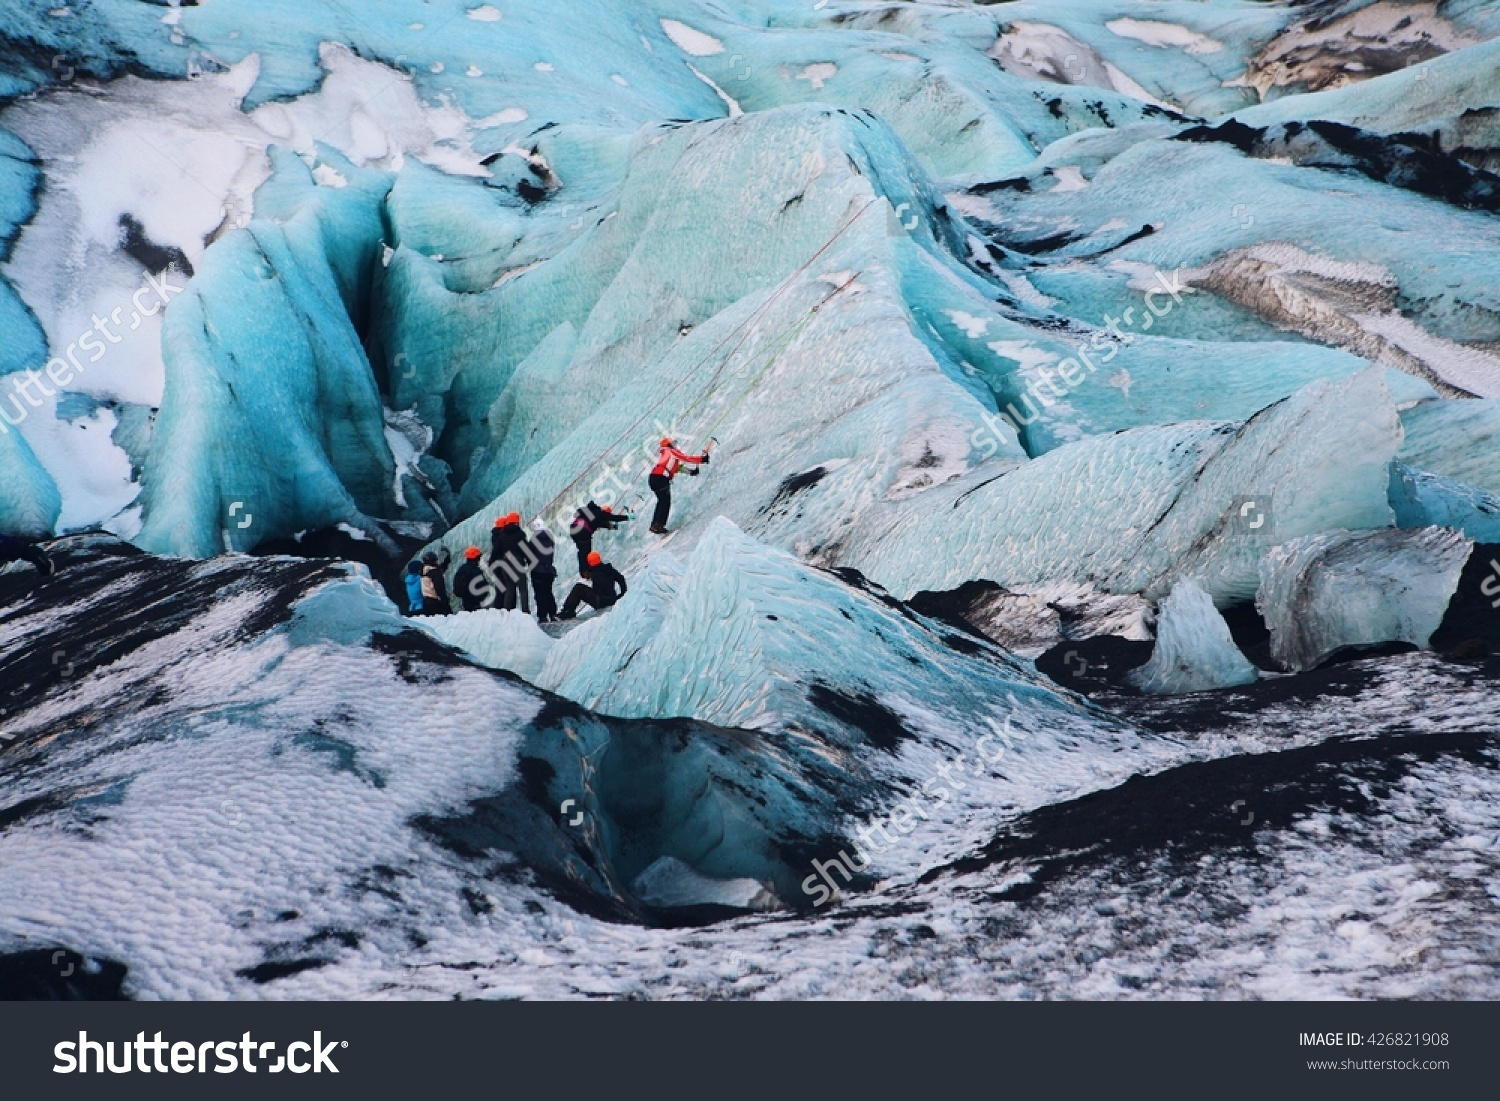 Ice Climbing Solheimajokull Iceland Stock Photo 426821908.